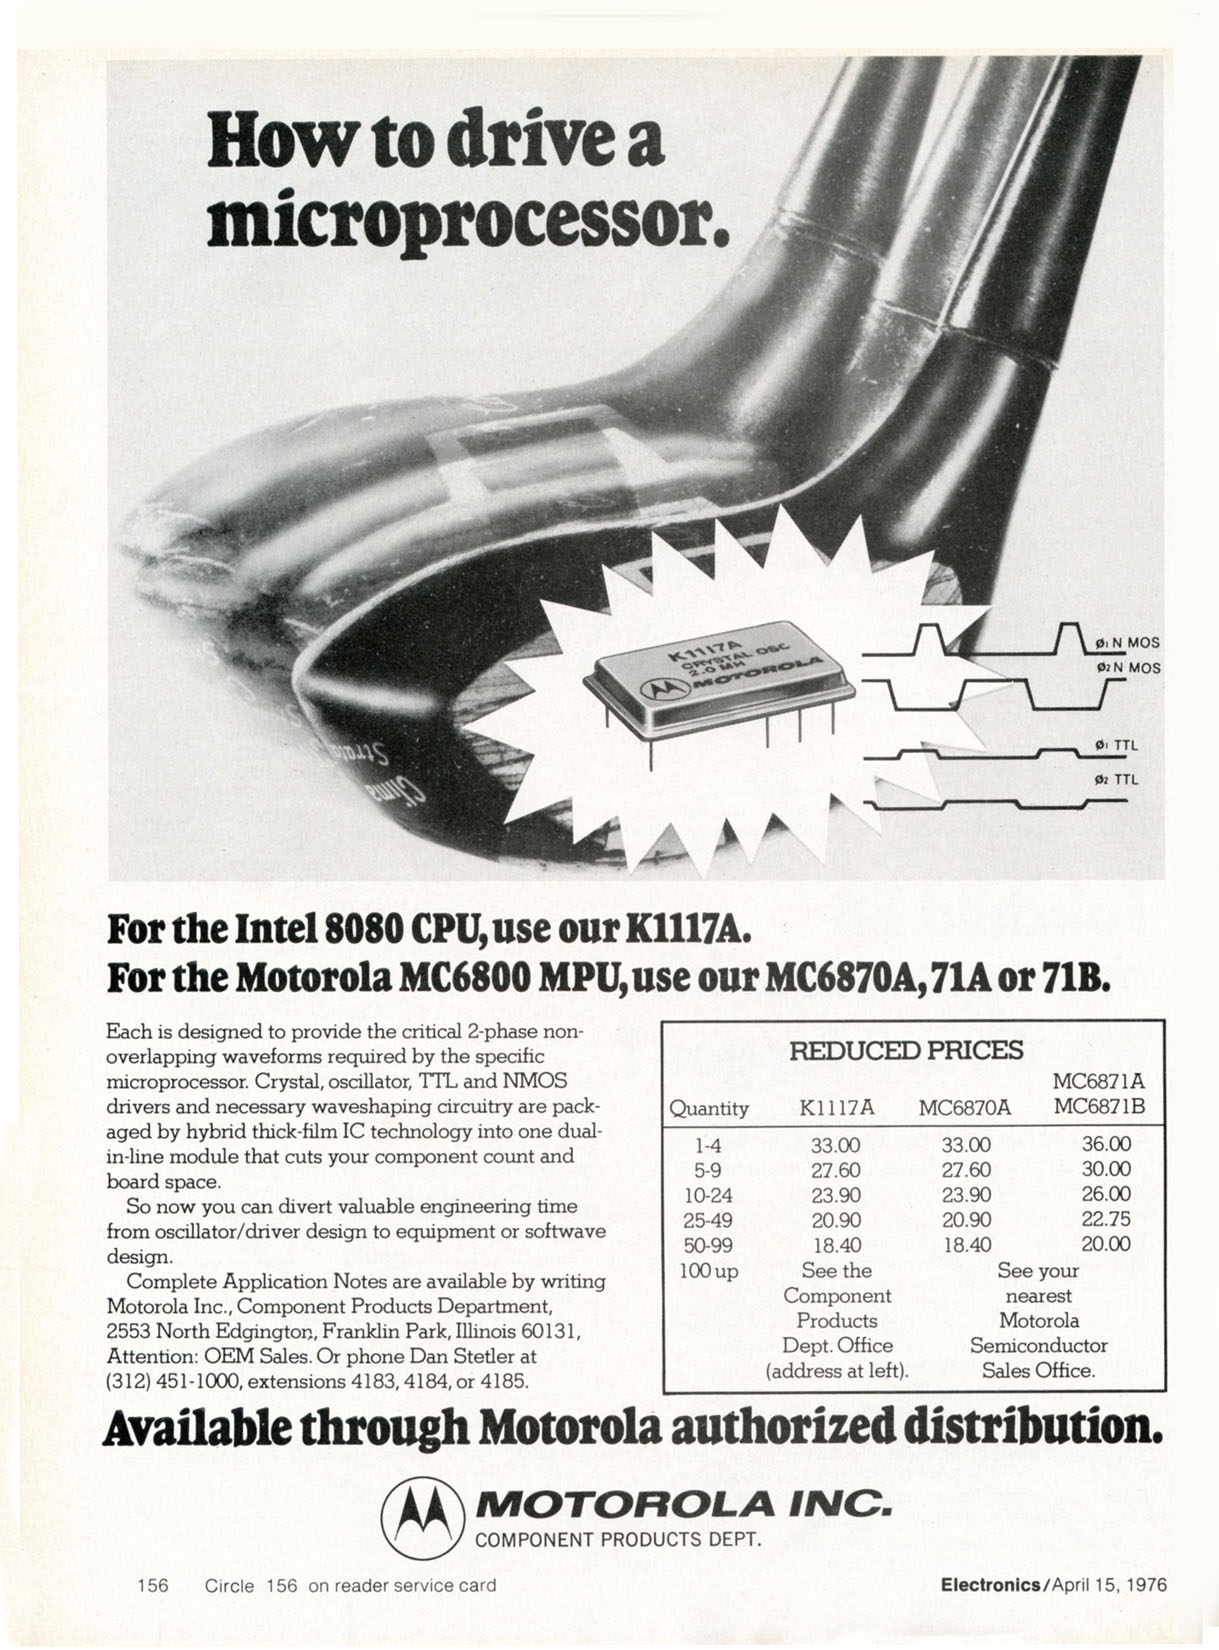 Motorola_MC6870_ad_April_1976.jpg